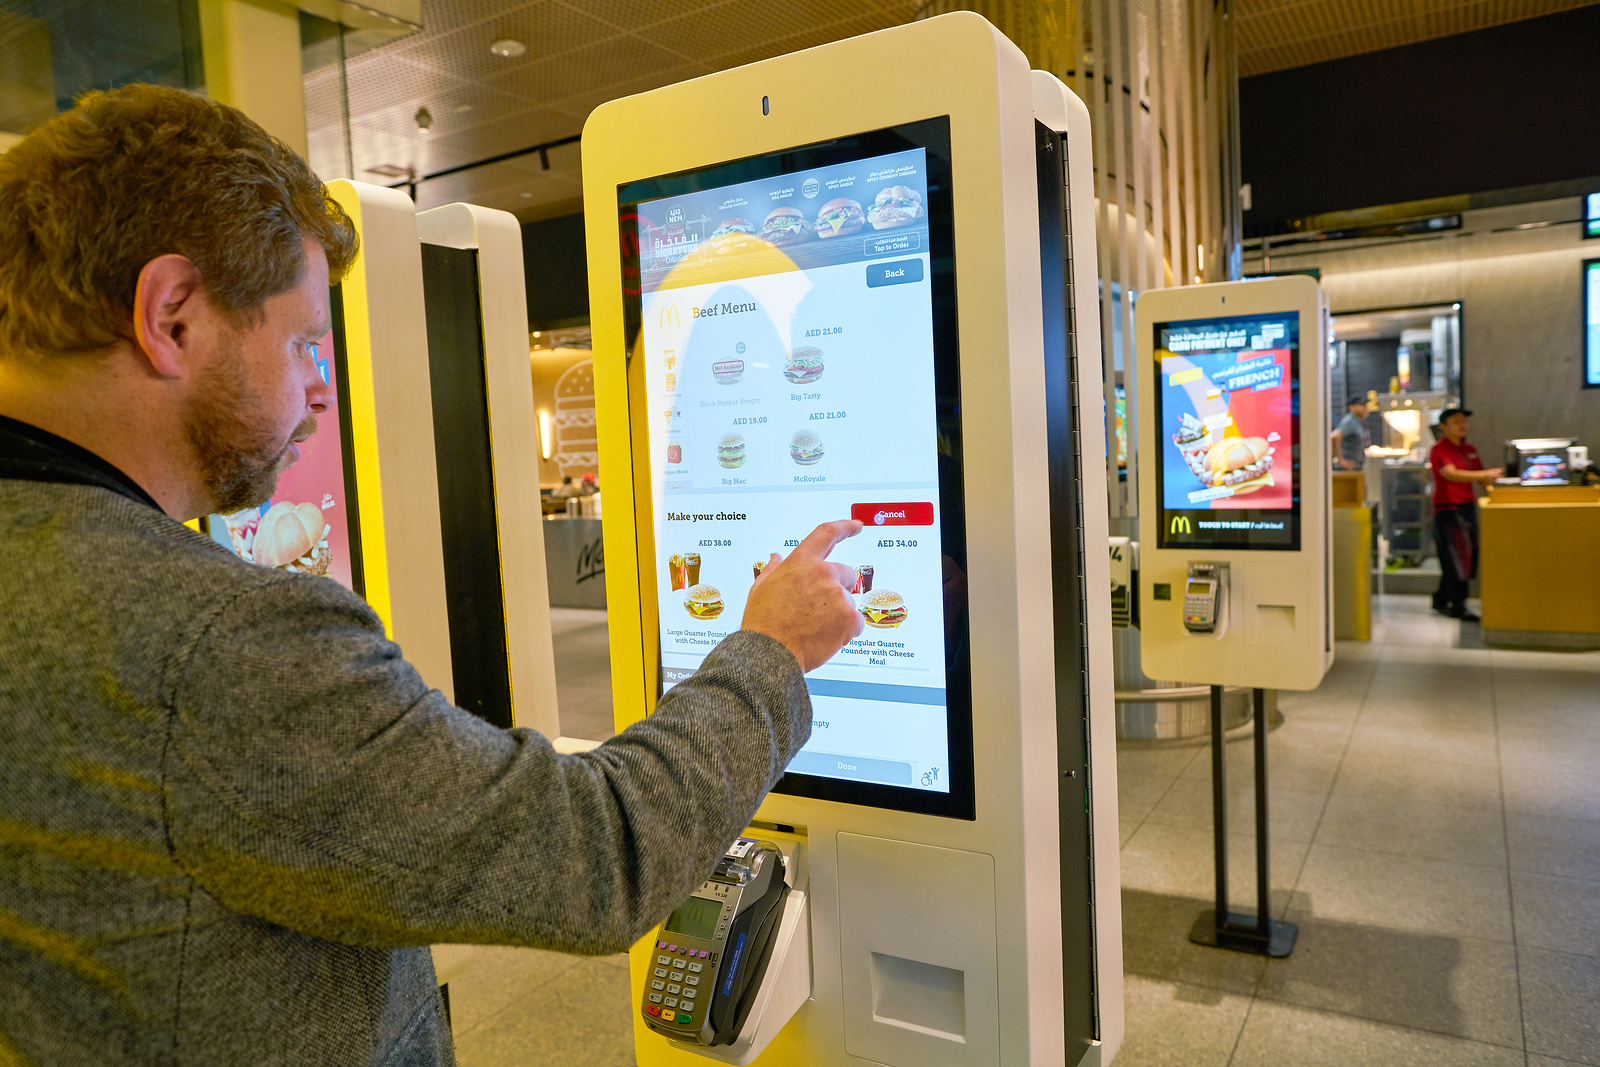 customer using self service kiosk and airport mcdonalds convenient ordering experience